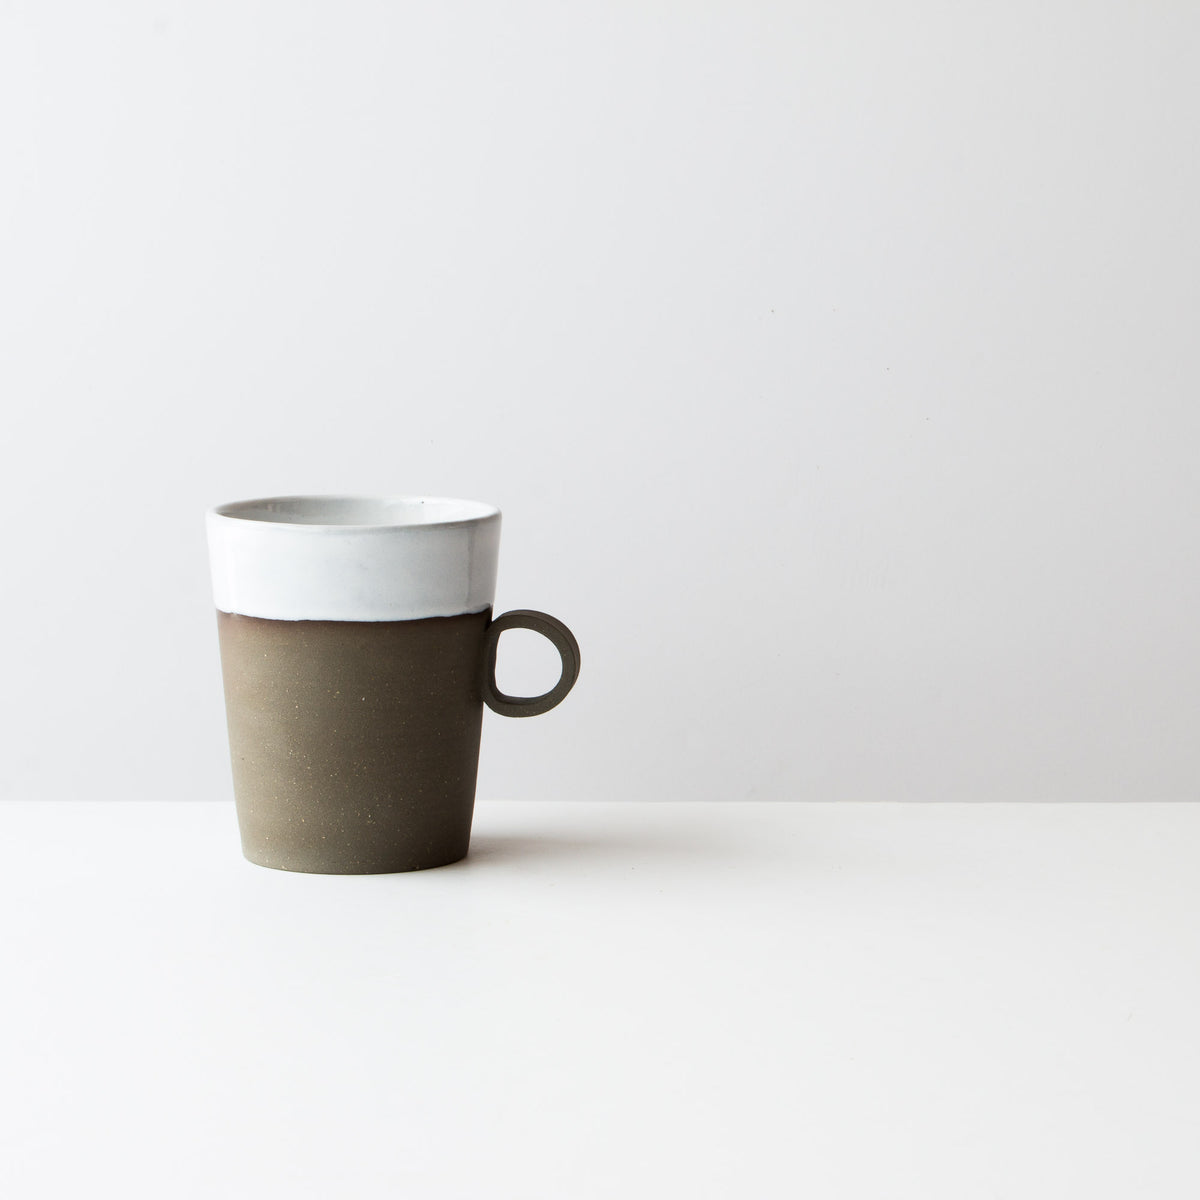 Handmade Very Large Mug in Grey Clay - Sold by Chic & Basta